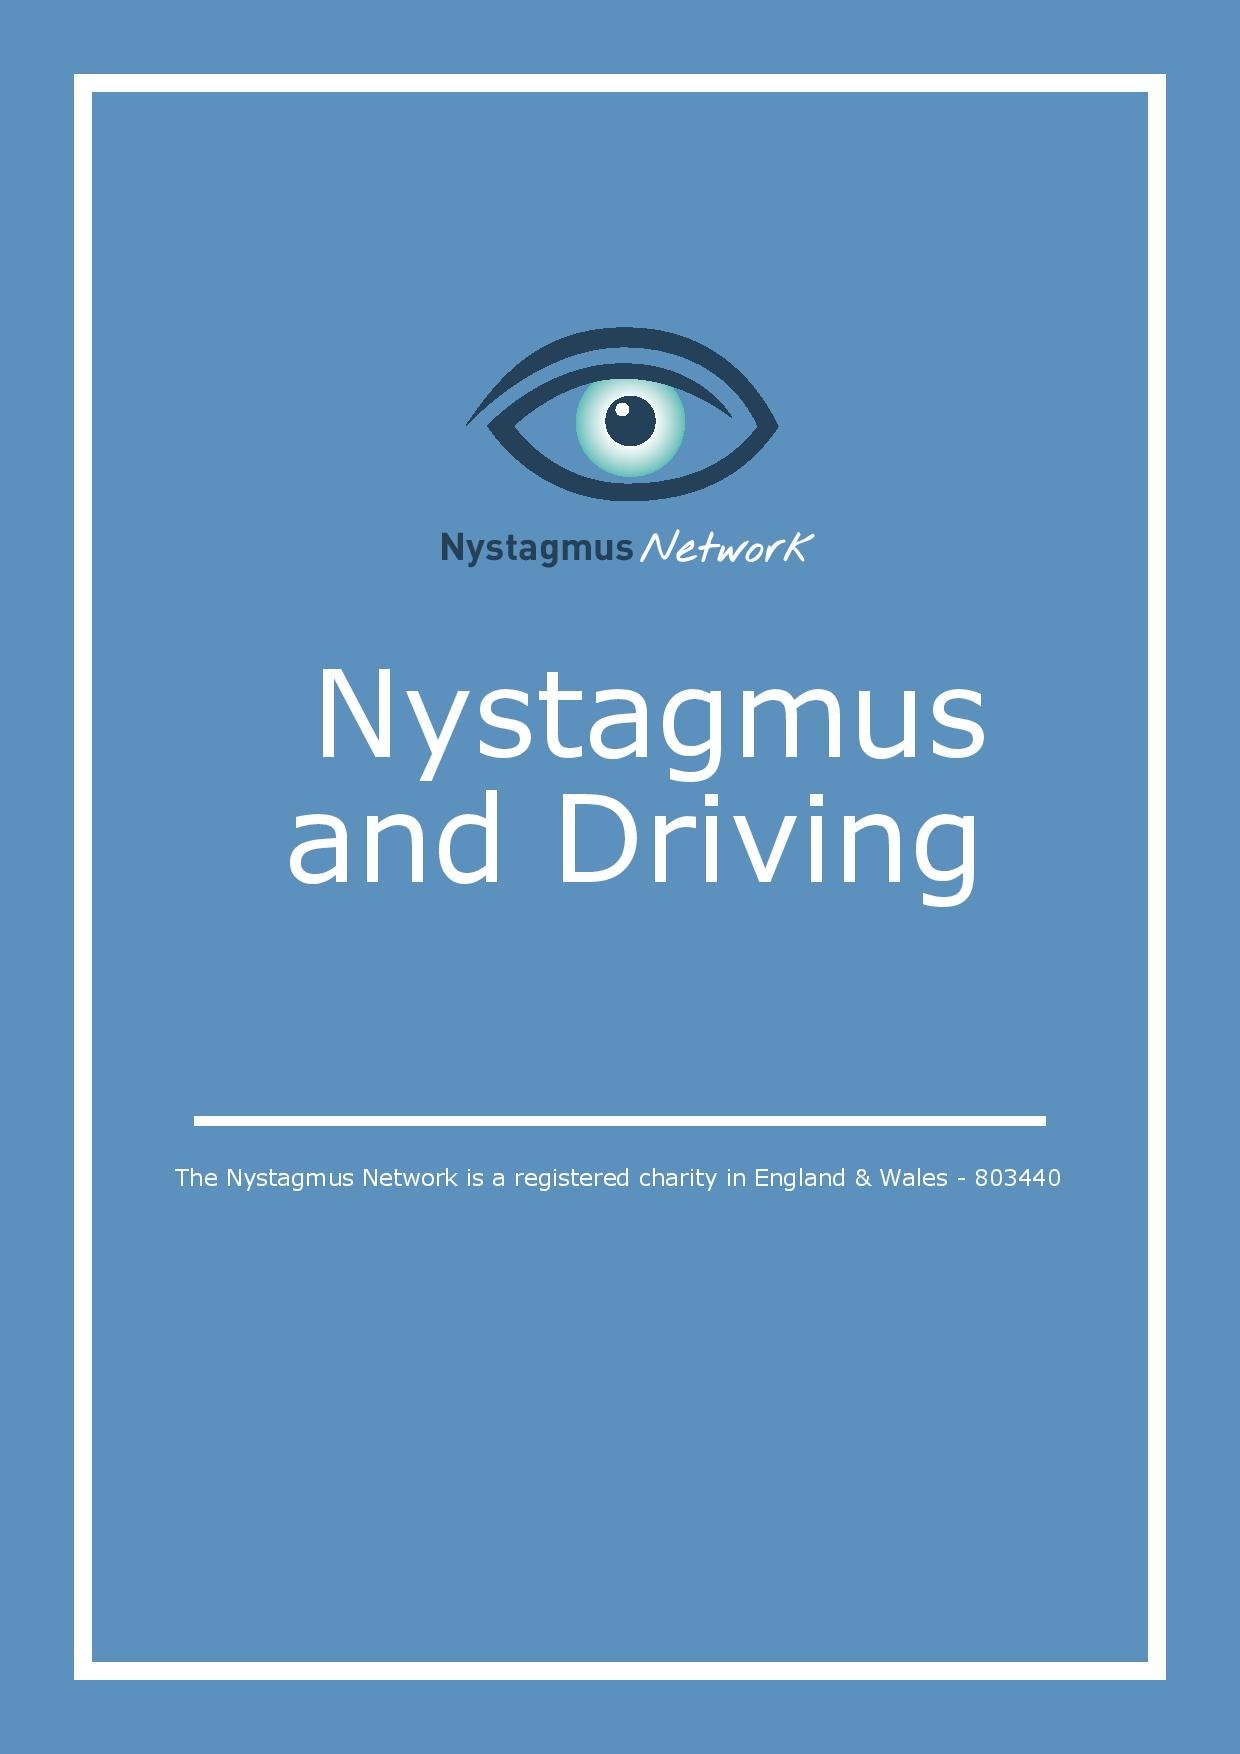 Nystagmus Network launches new publication on nystagmus and driving